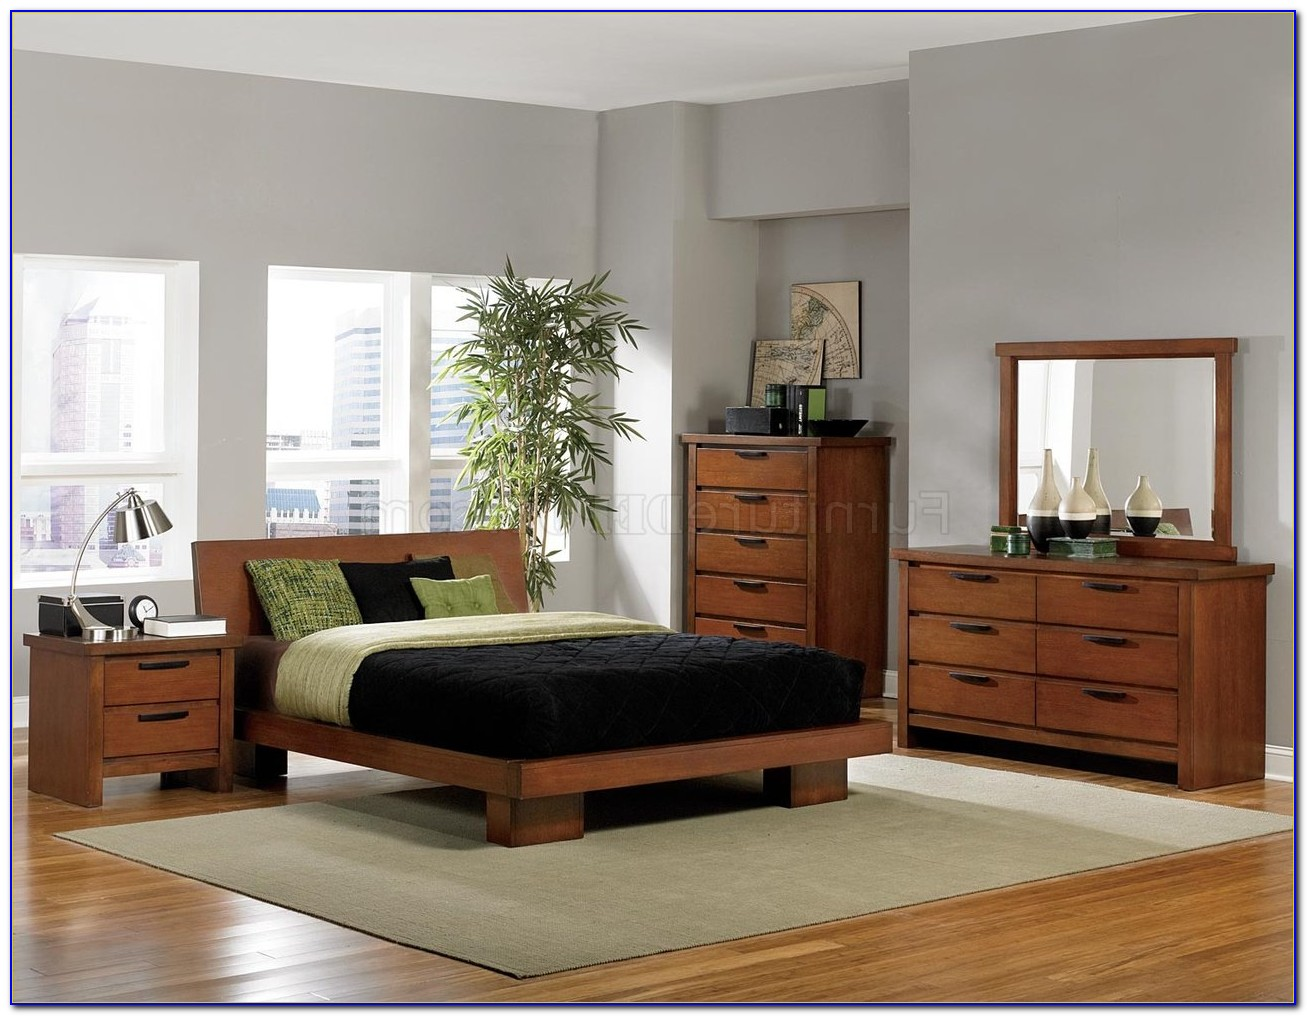 Medium Oak Bedroom Sets